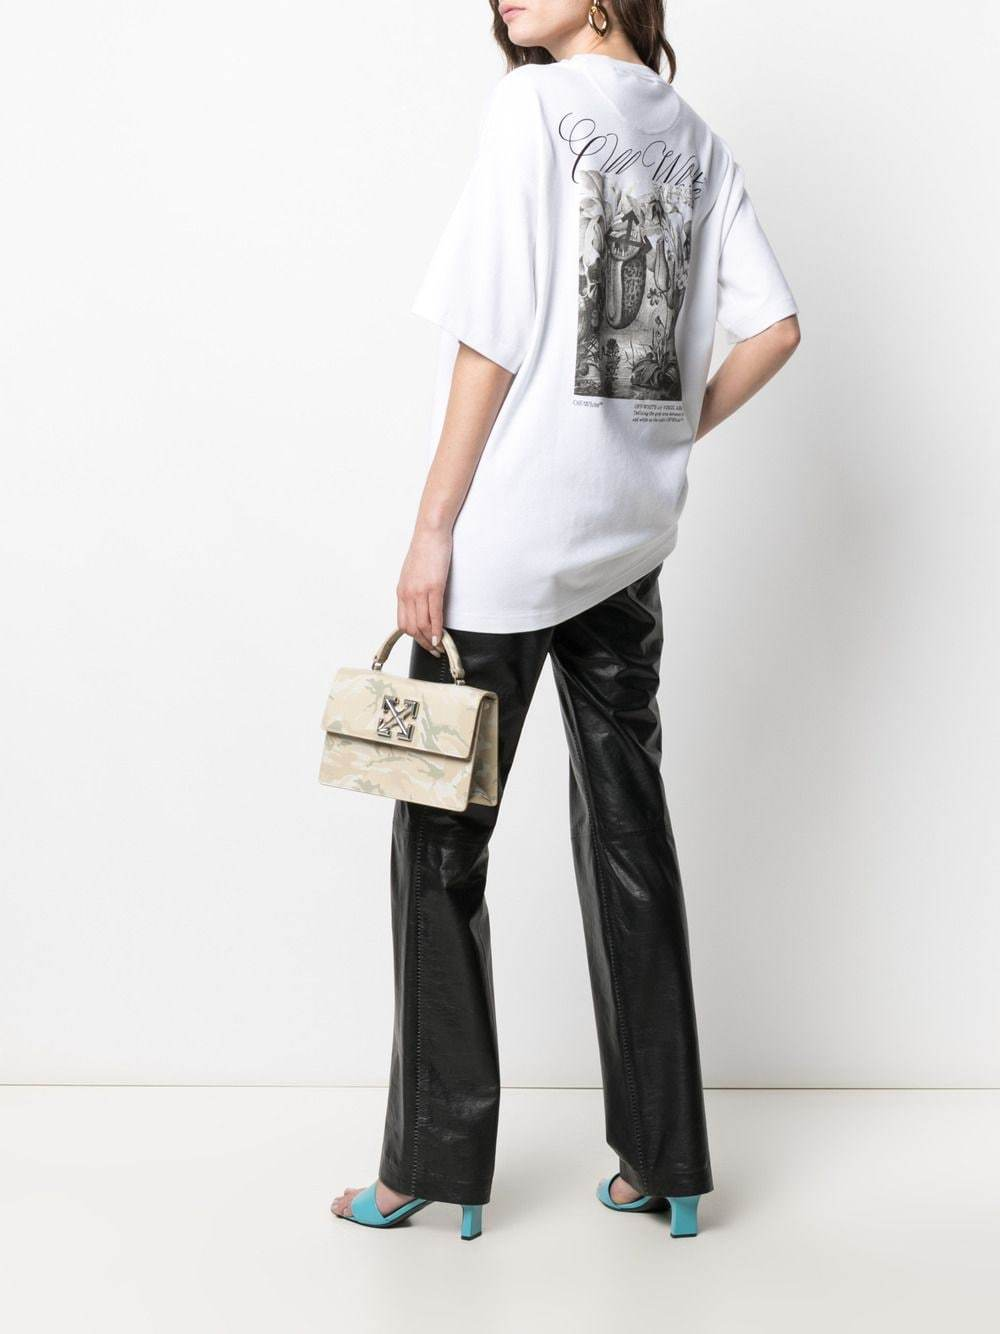 OFF-WHITE WOMEN Botanical Tomboy T-Shirt White